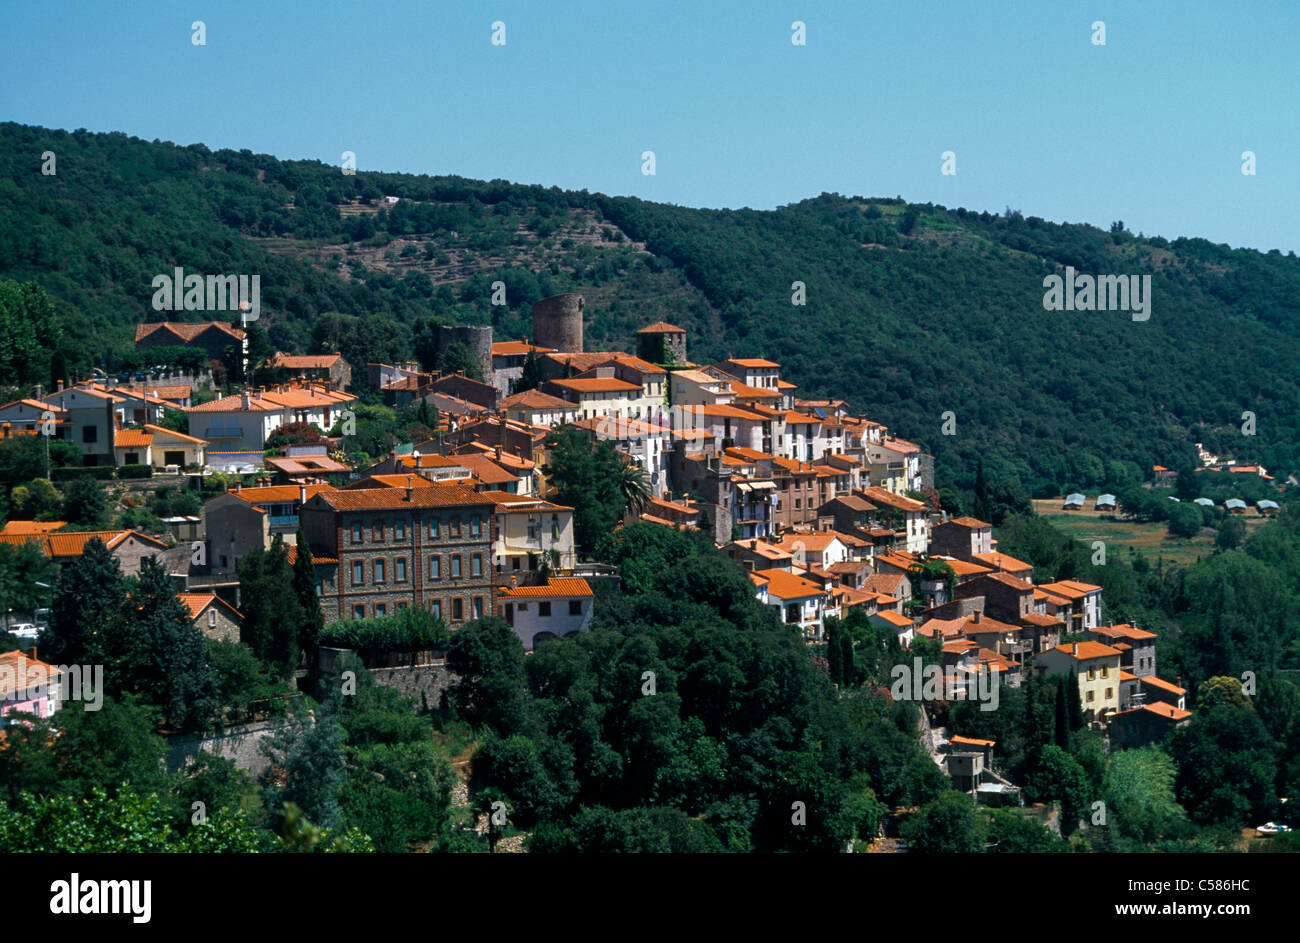 amelie les bains palalda france languedoc roussillon town in the stock photo 37674824 alamy. Black Bedroom Furniture Sets. Home Design Ideas